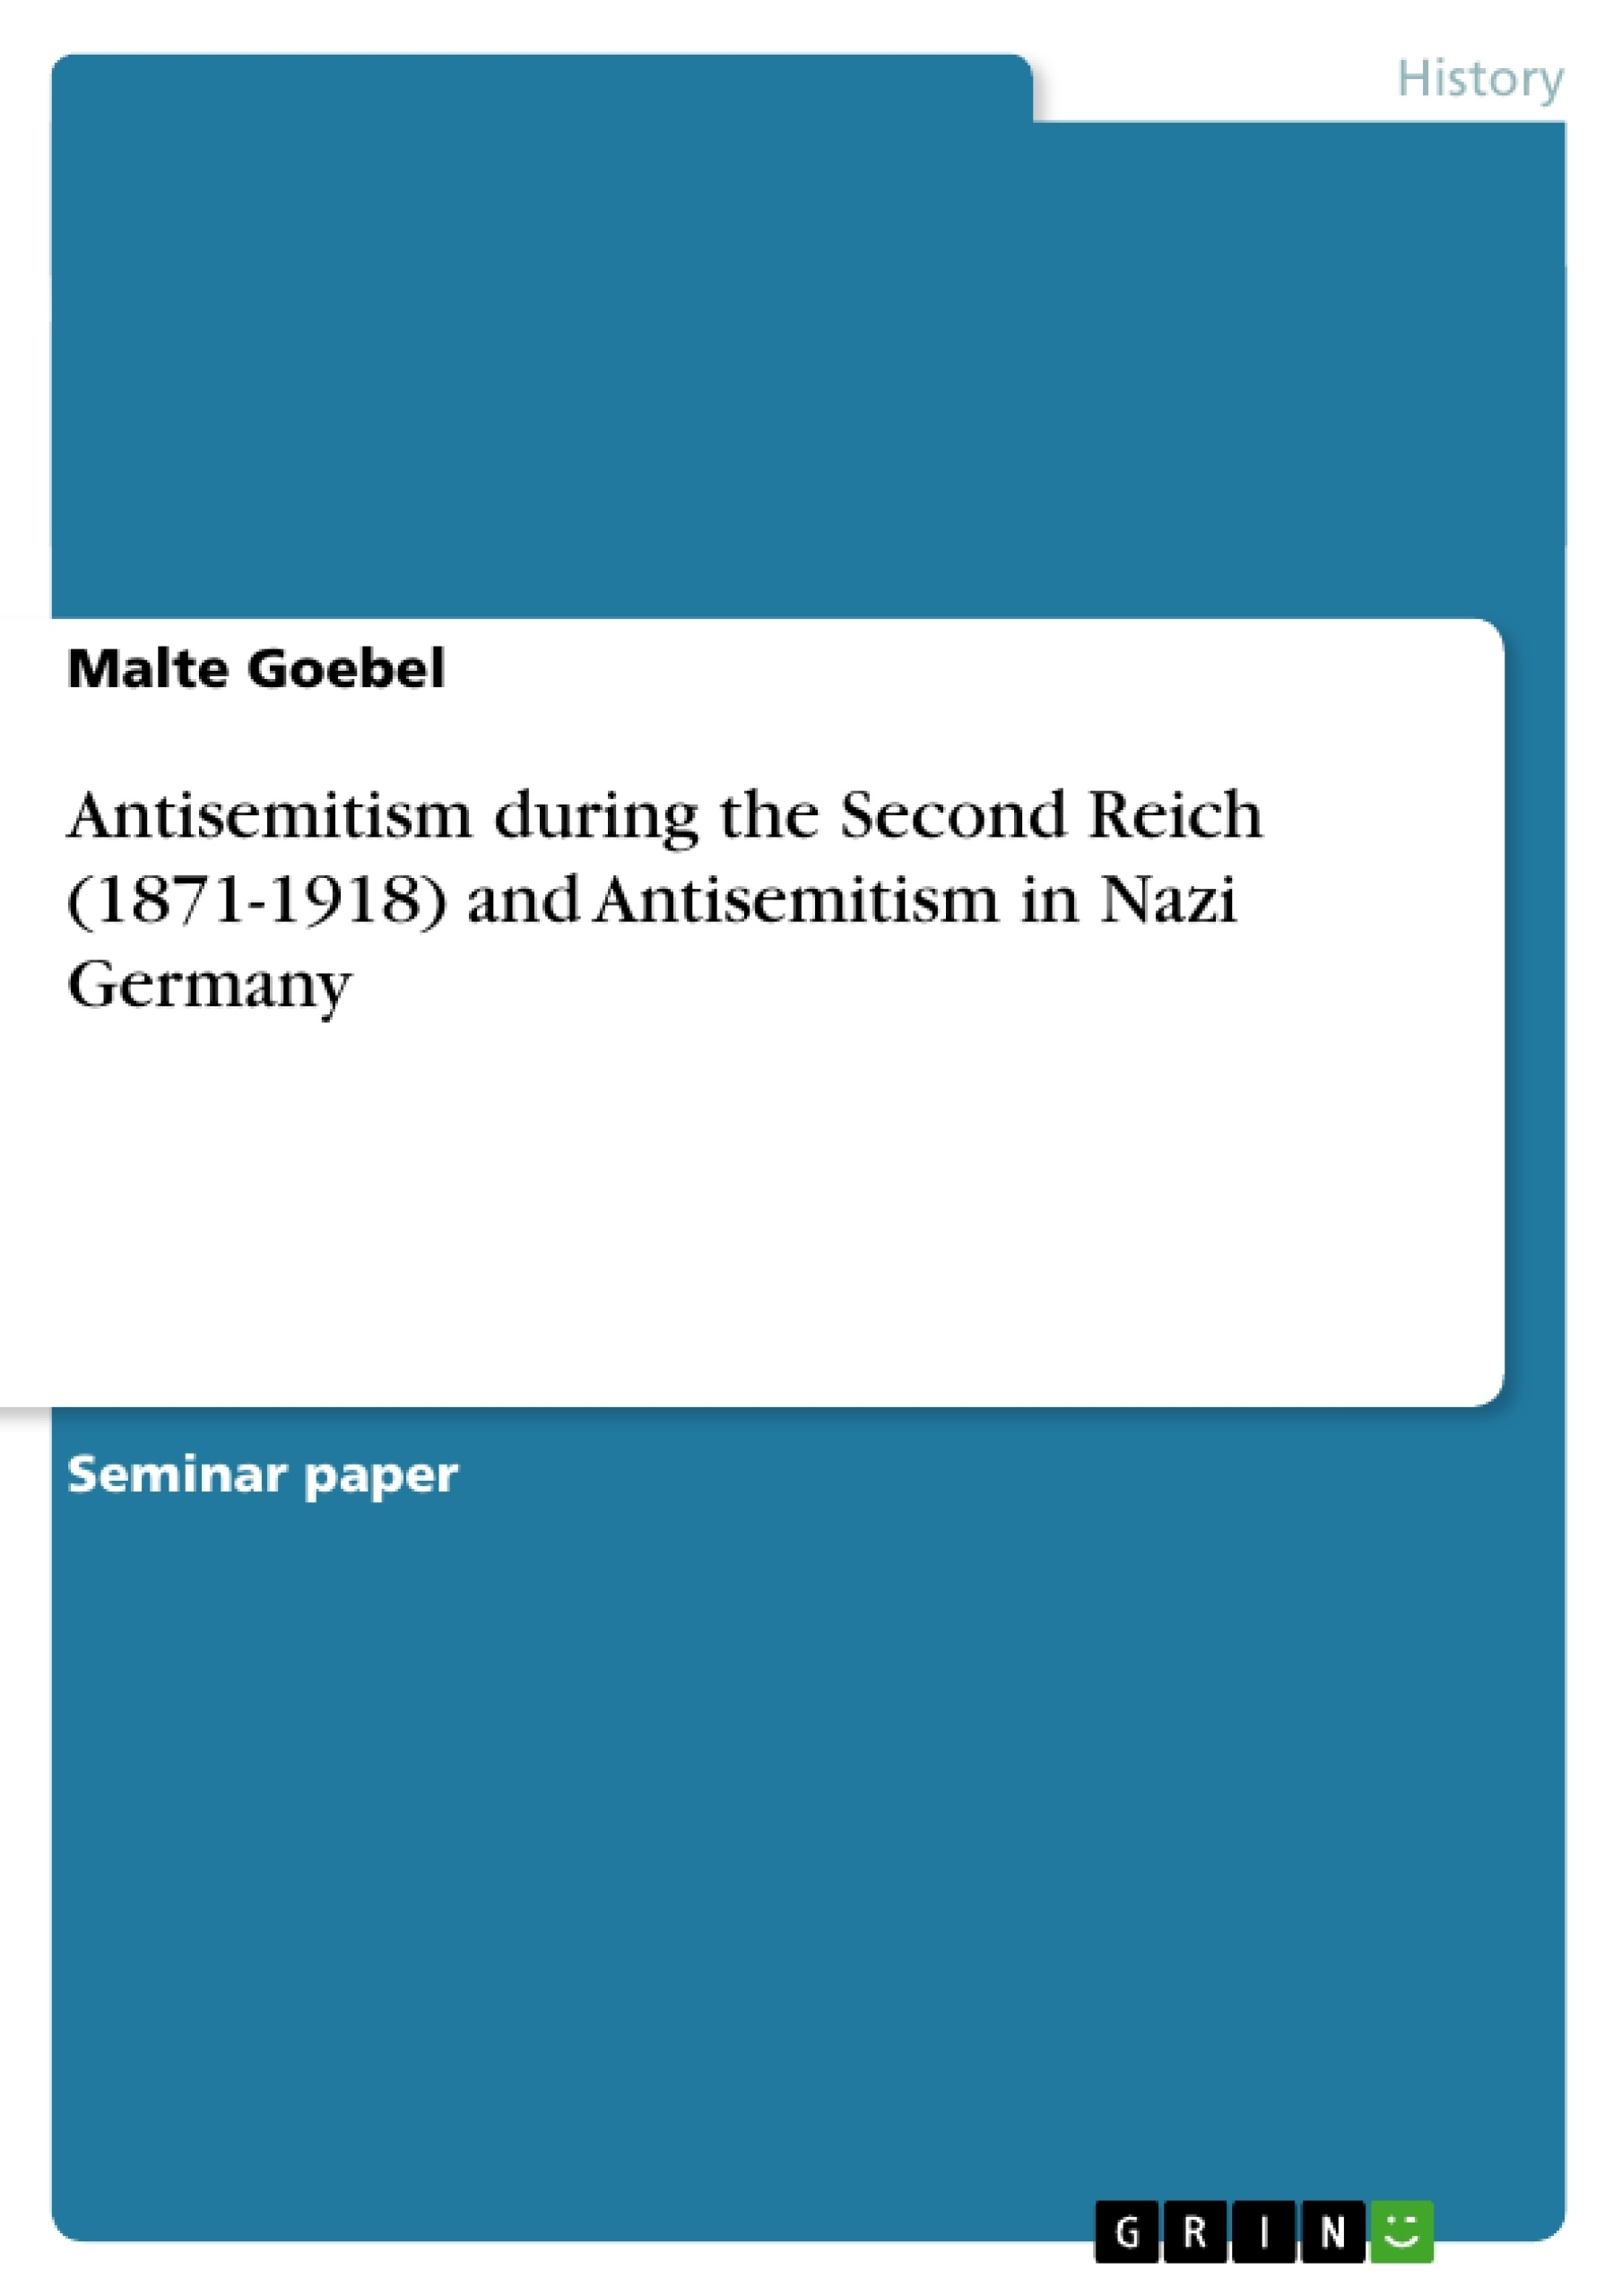 antisemitism during the second reich and antisemitism antisemitism during the second reich 1871 1918 and antisemitism publish your master s thesis bachelor s thesis essay or term paper